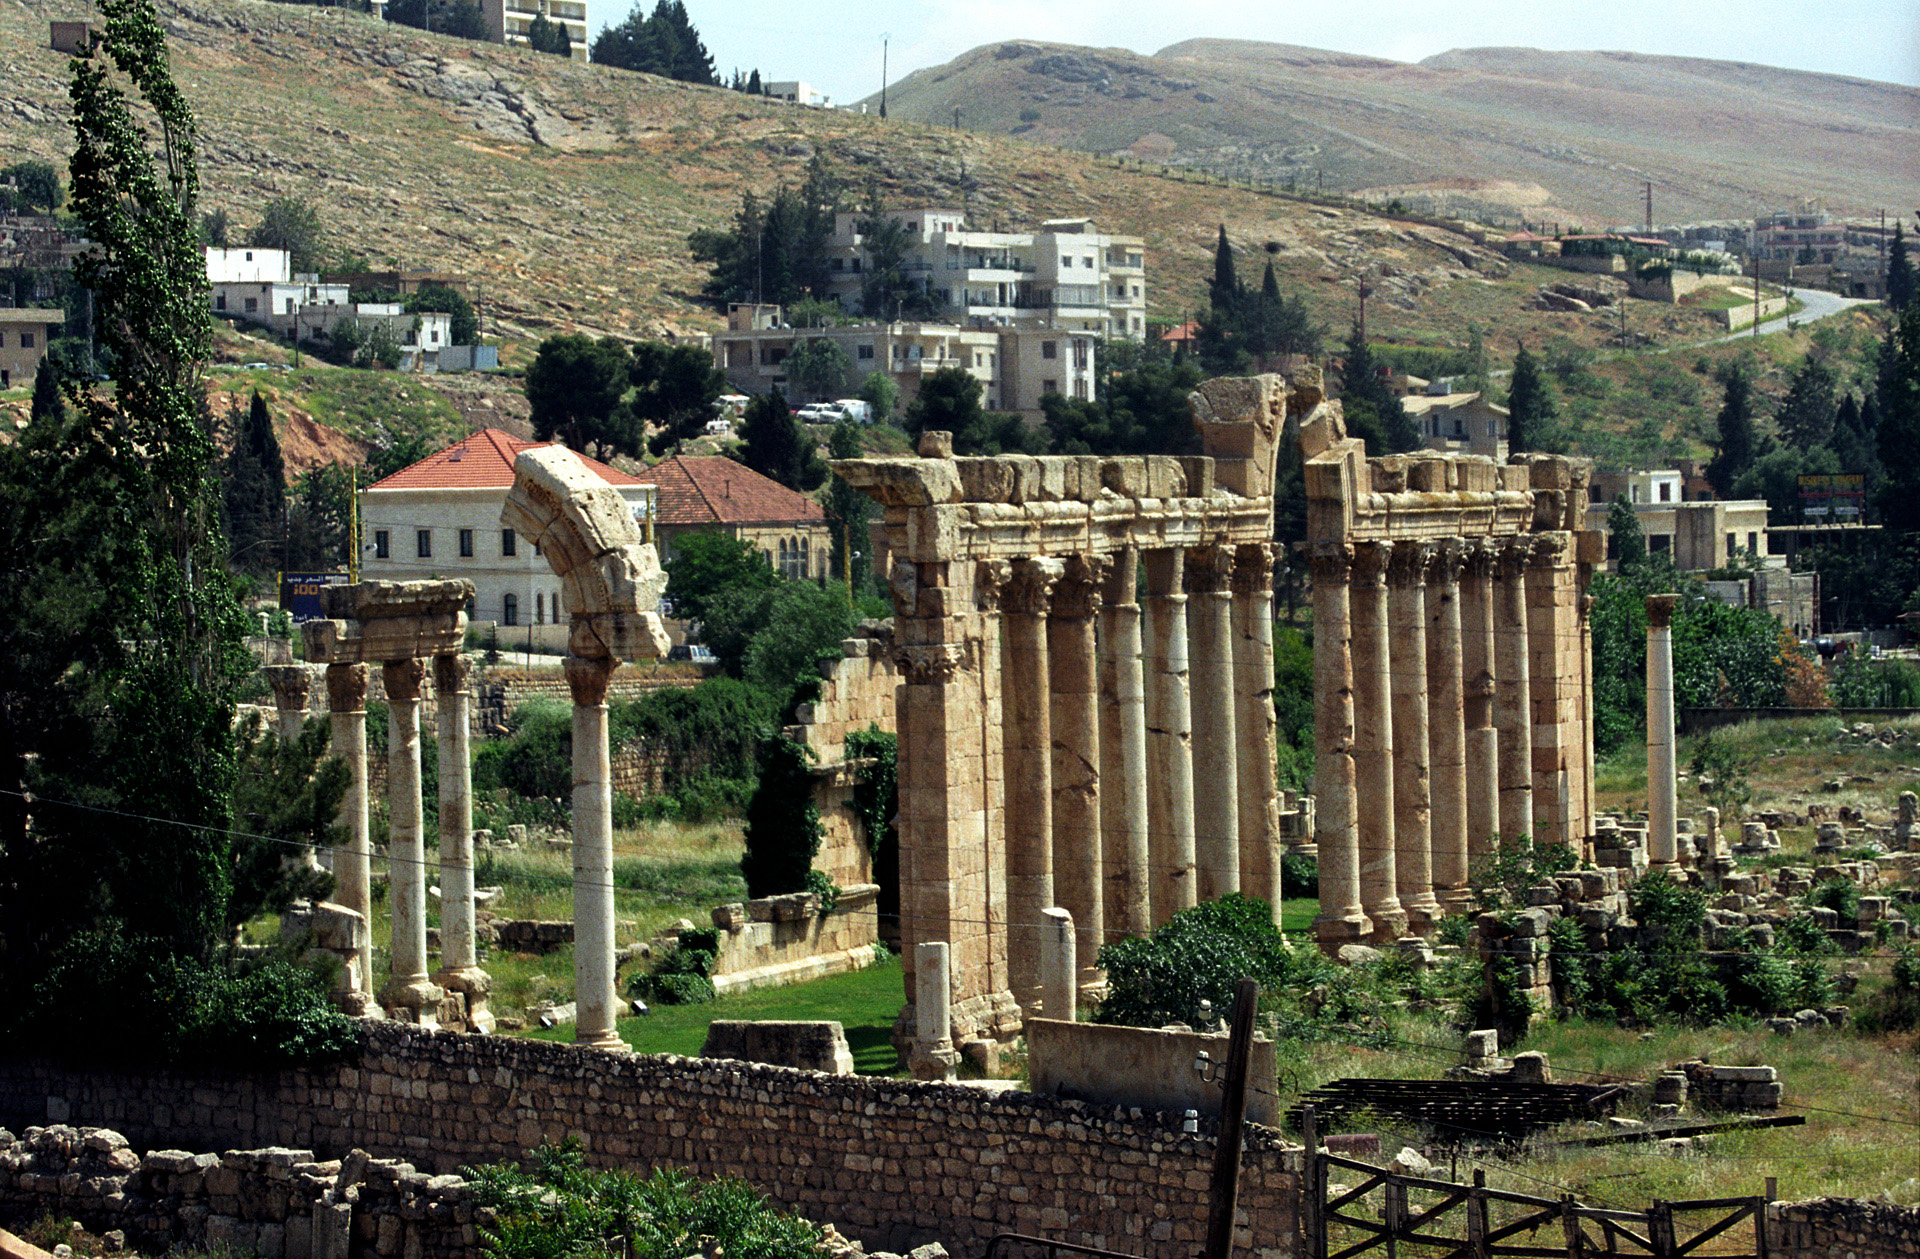 http://upload.wikimedia.org/wikipedia/commons/3/3e/Baalbek%28js%29_19.jpg